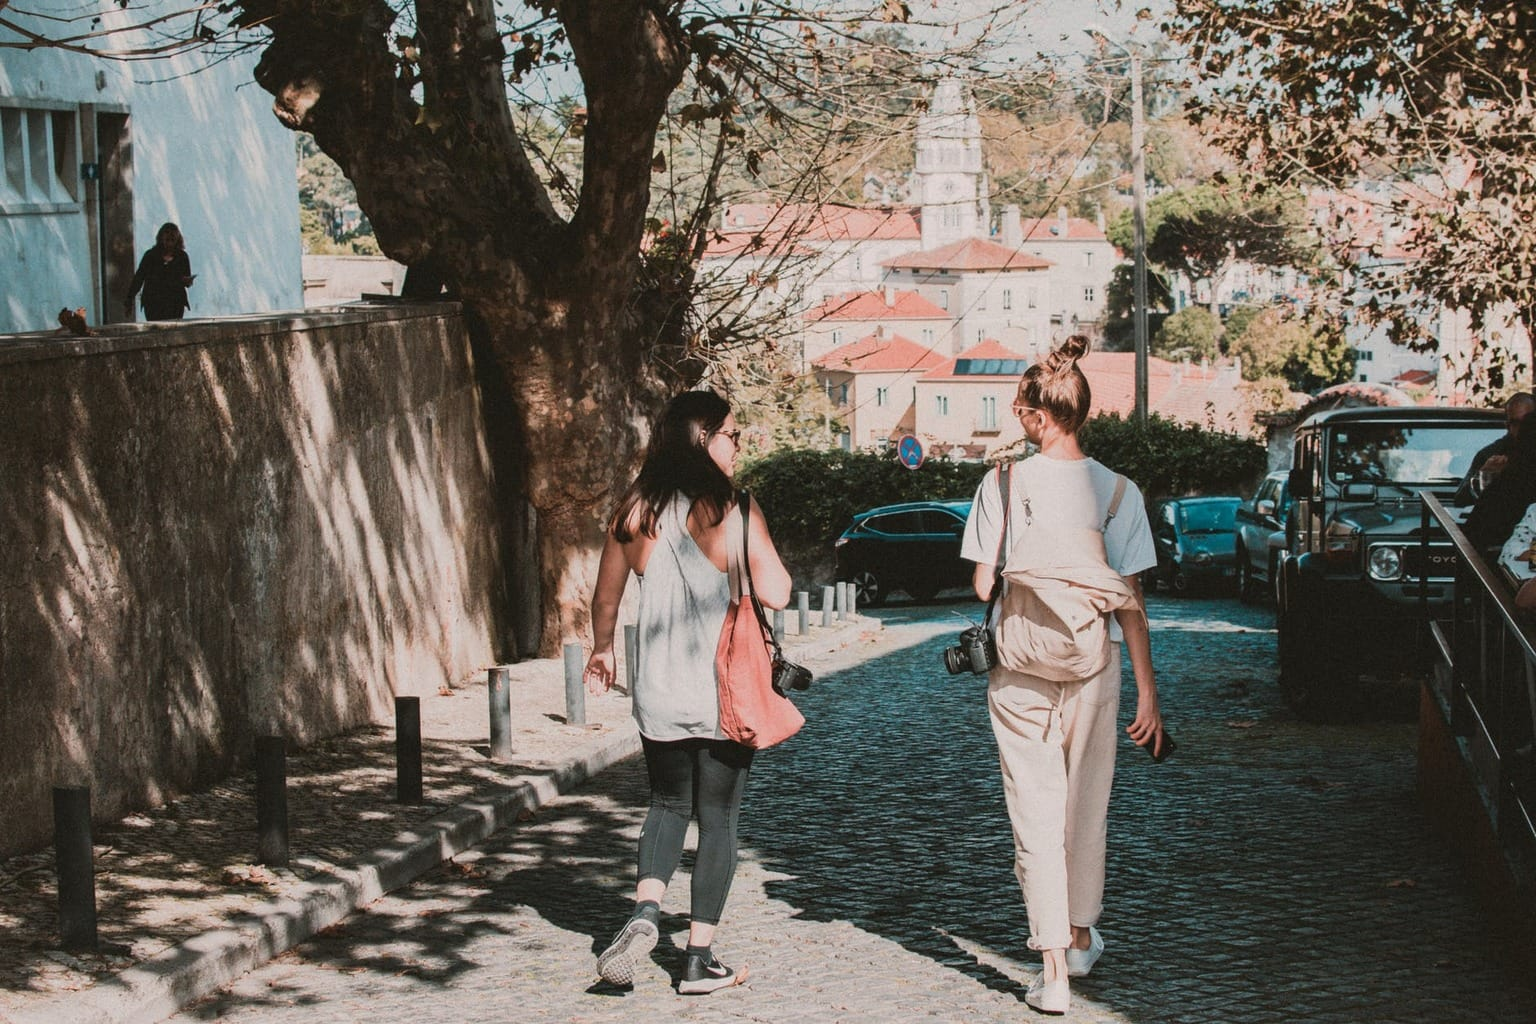 Two girls walking down the street with bags